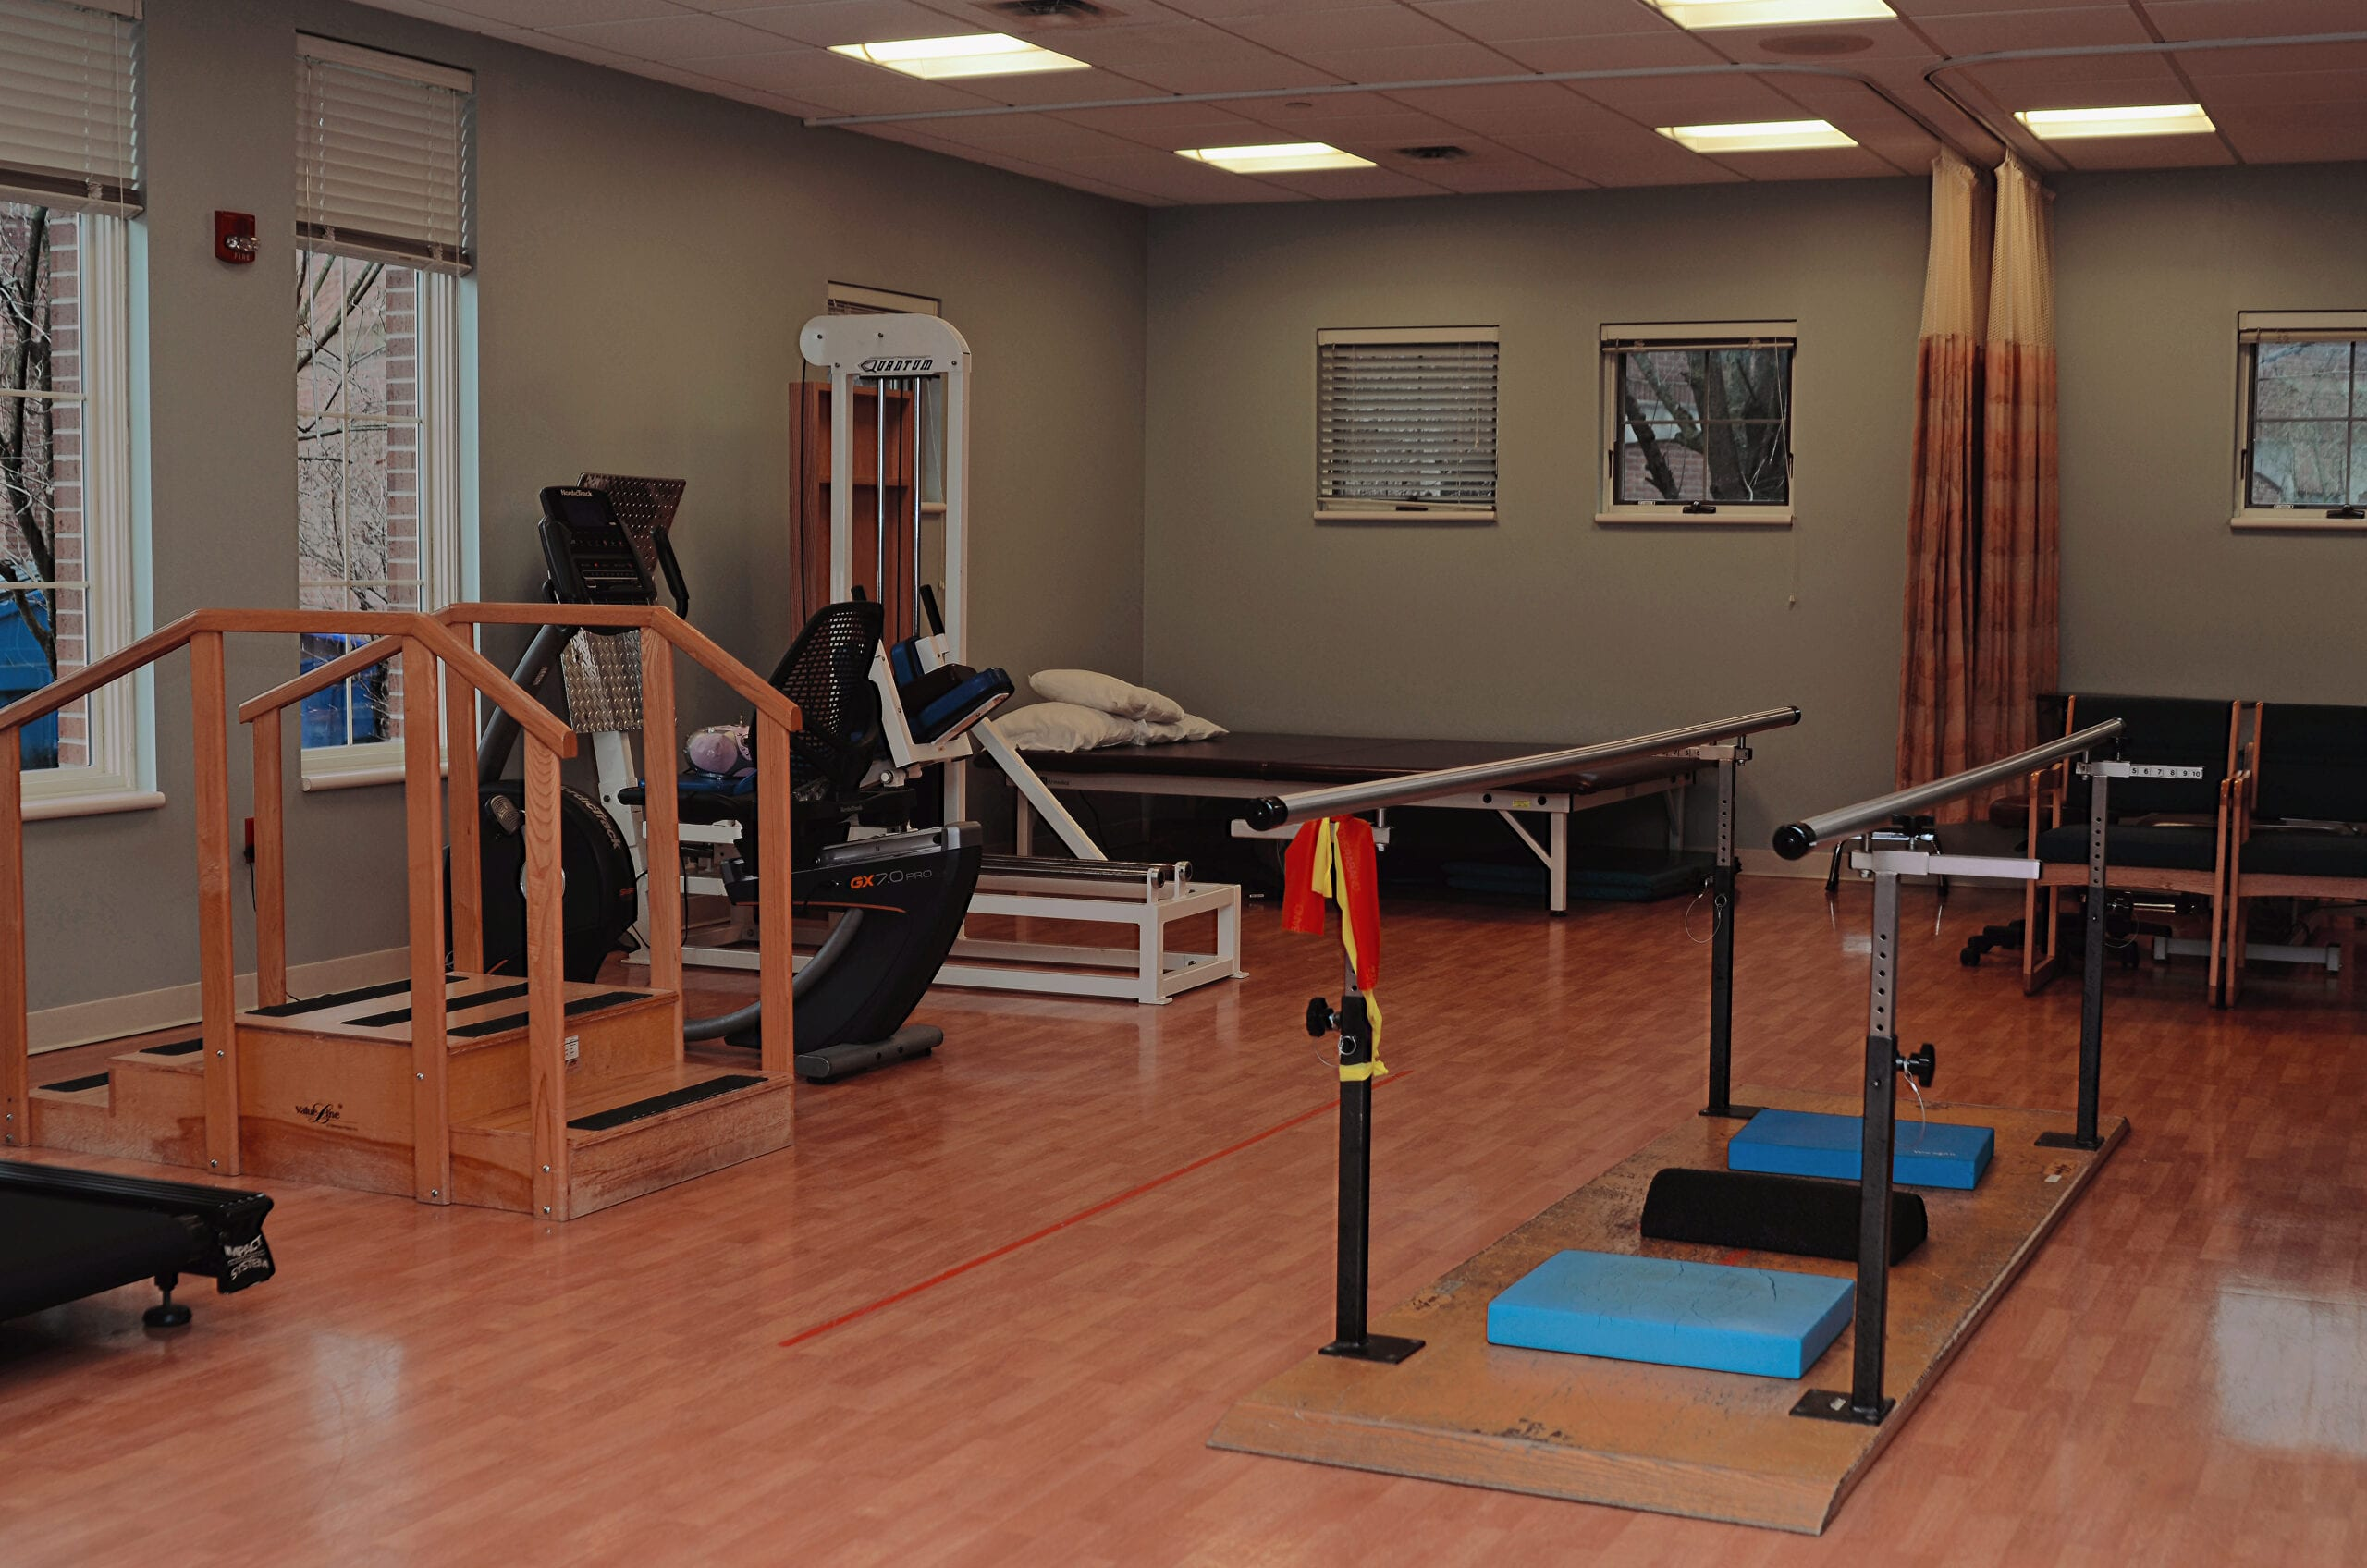 Inpatient and Outpatient Physical Therapy Gym